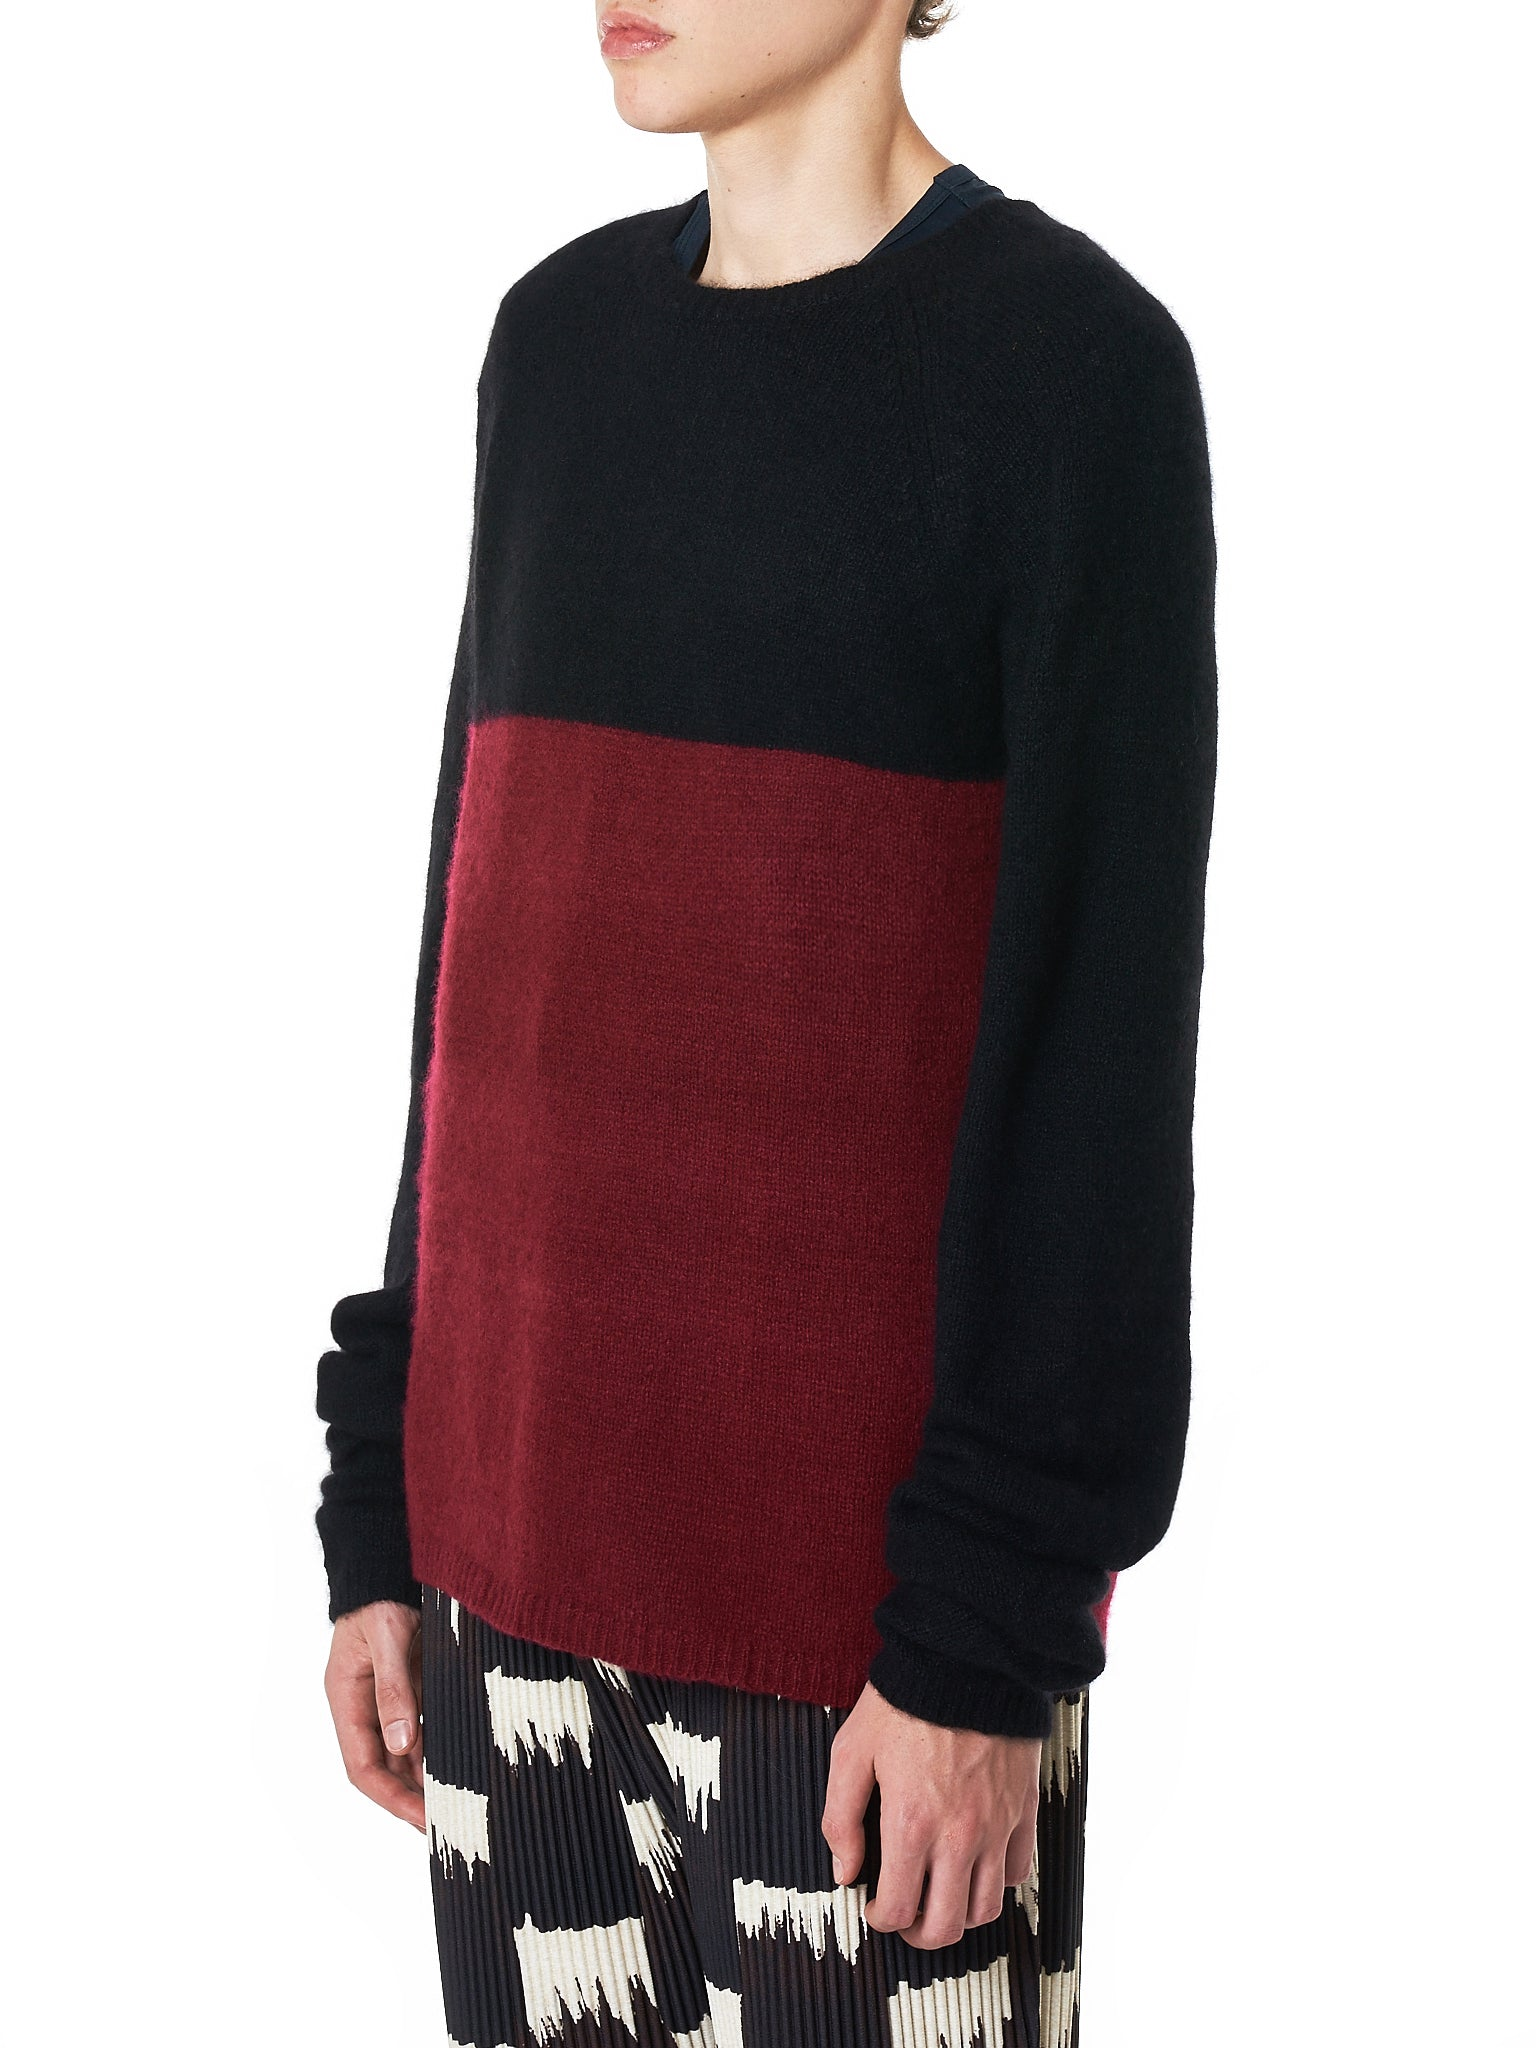 Denis Colomb Sweater - Hlorenzo Side